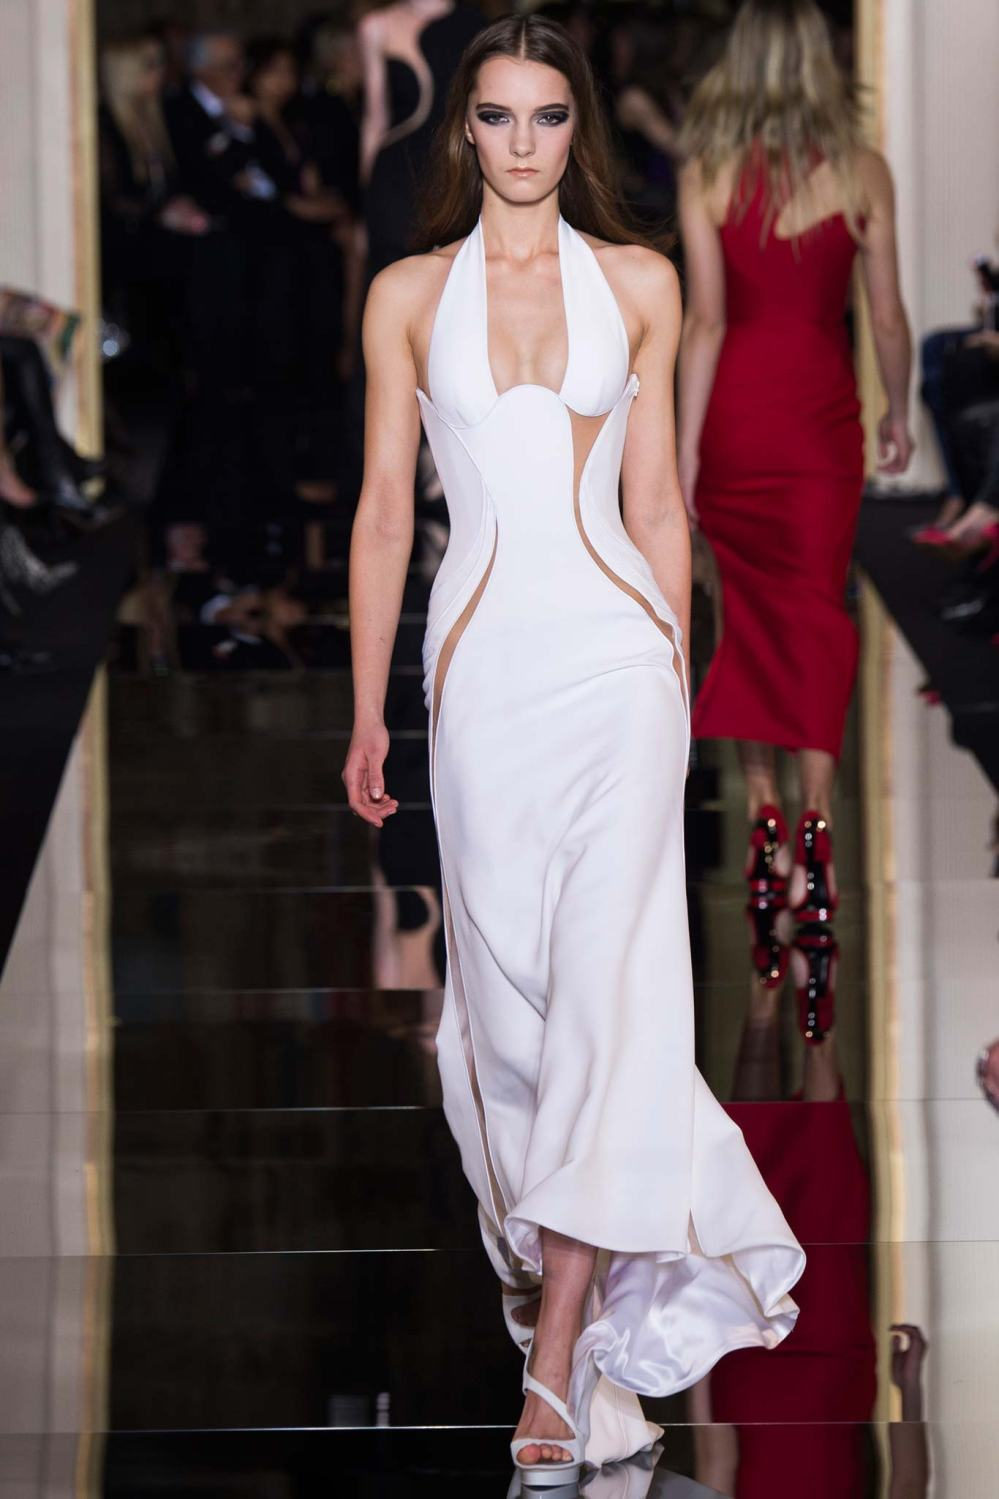 Atelier Versace, Spring/Summer 2015 Look 11 Model : Irina Liss Photo: Kim Weston Arnold/Indigitalimages.com